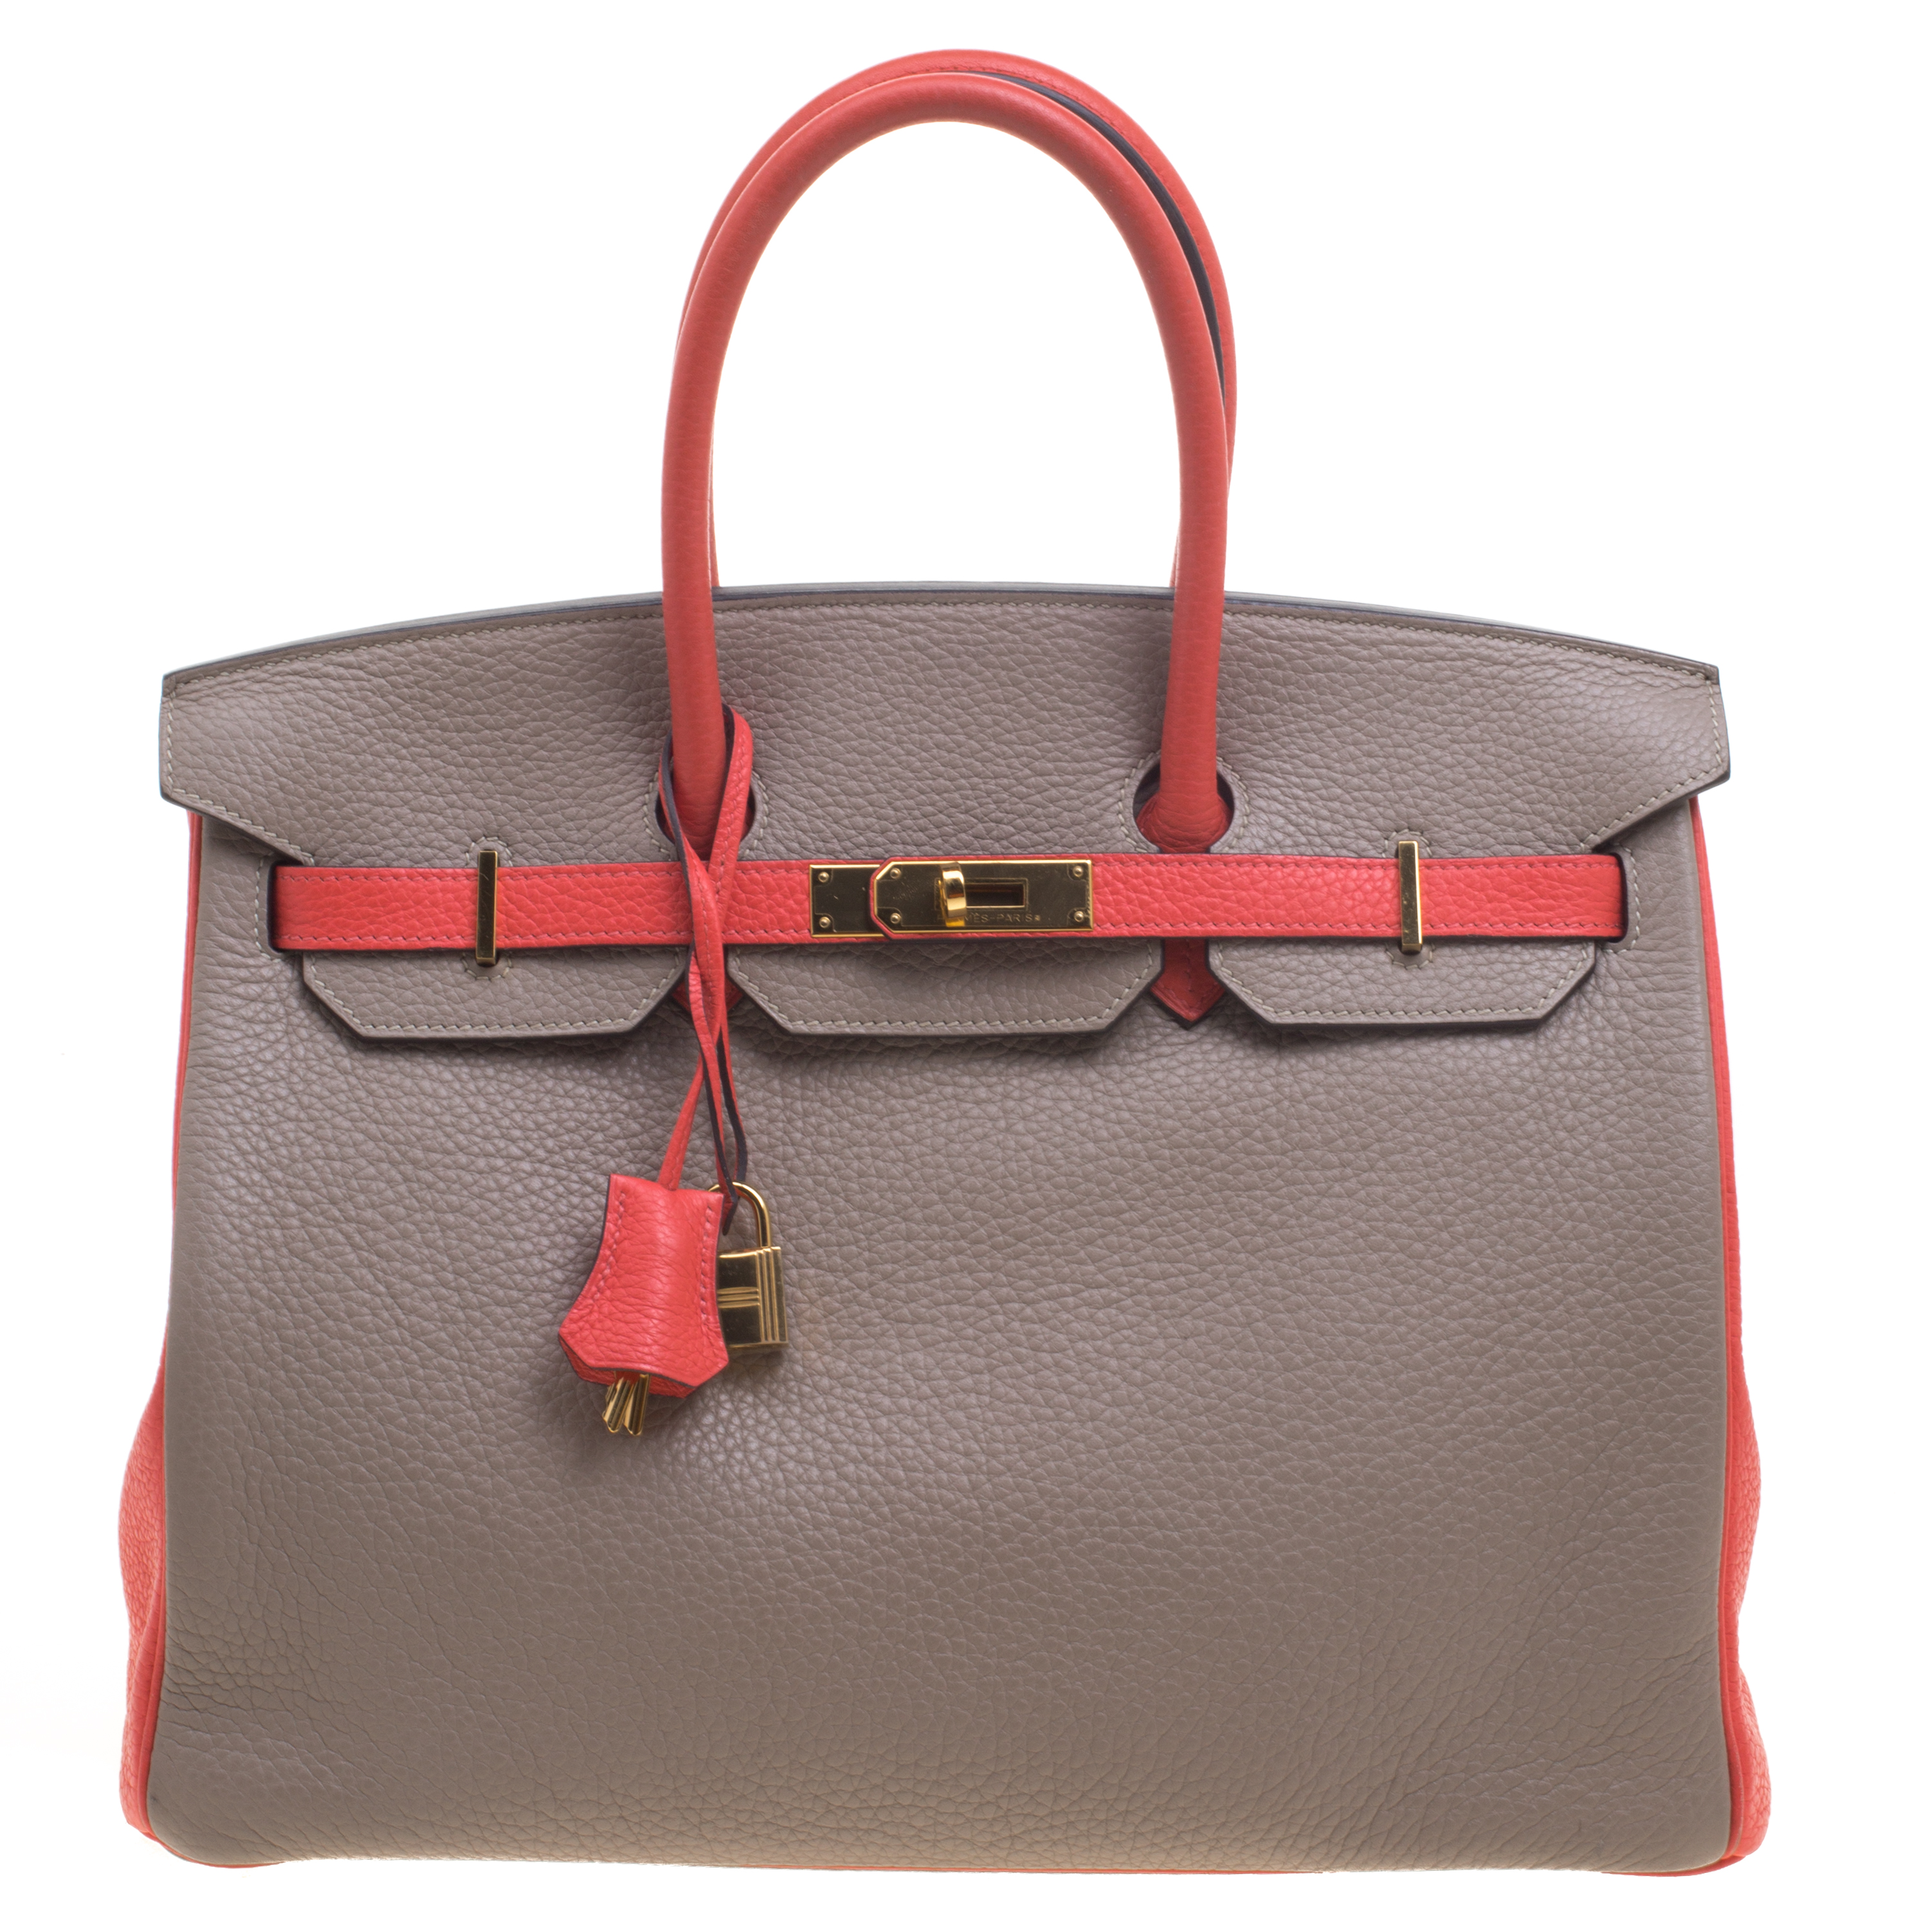 Buy Hermes Etain Bougainvillea Clemence Togo Leather Gold Hardware Special  Order Birkin 35 Bag 95017 at best price  a8032f98edd65